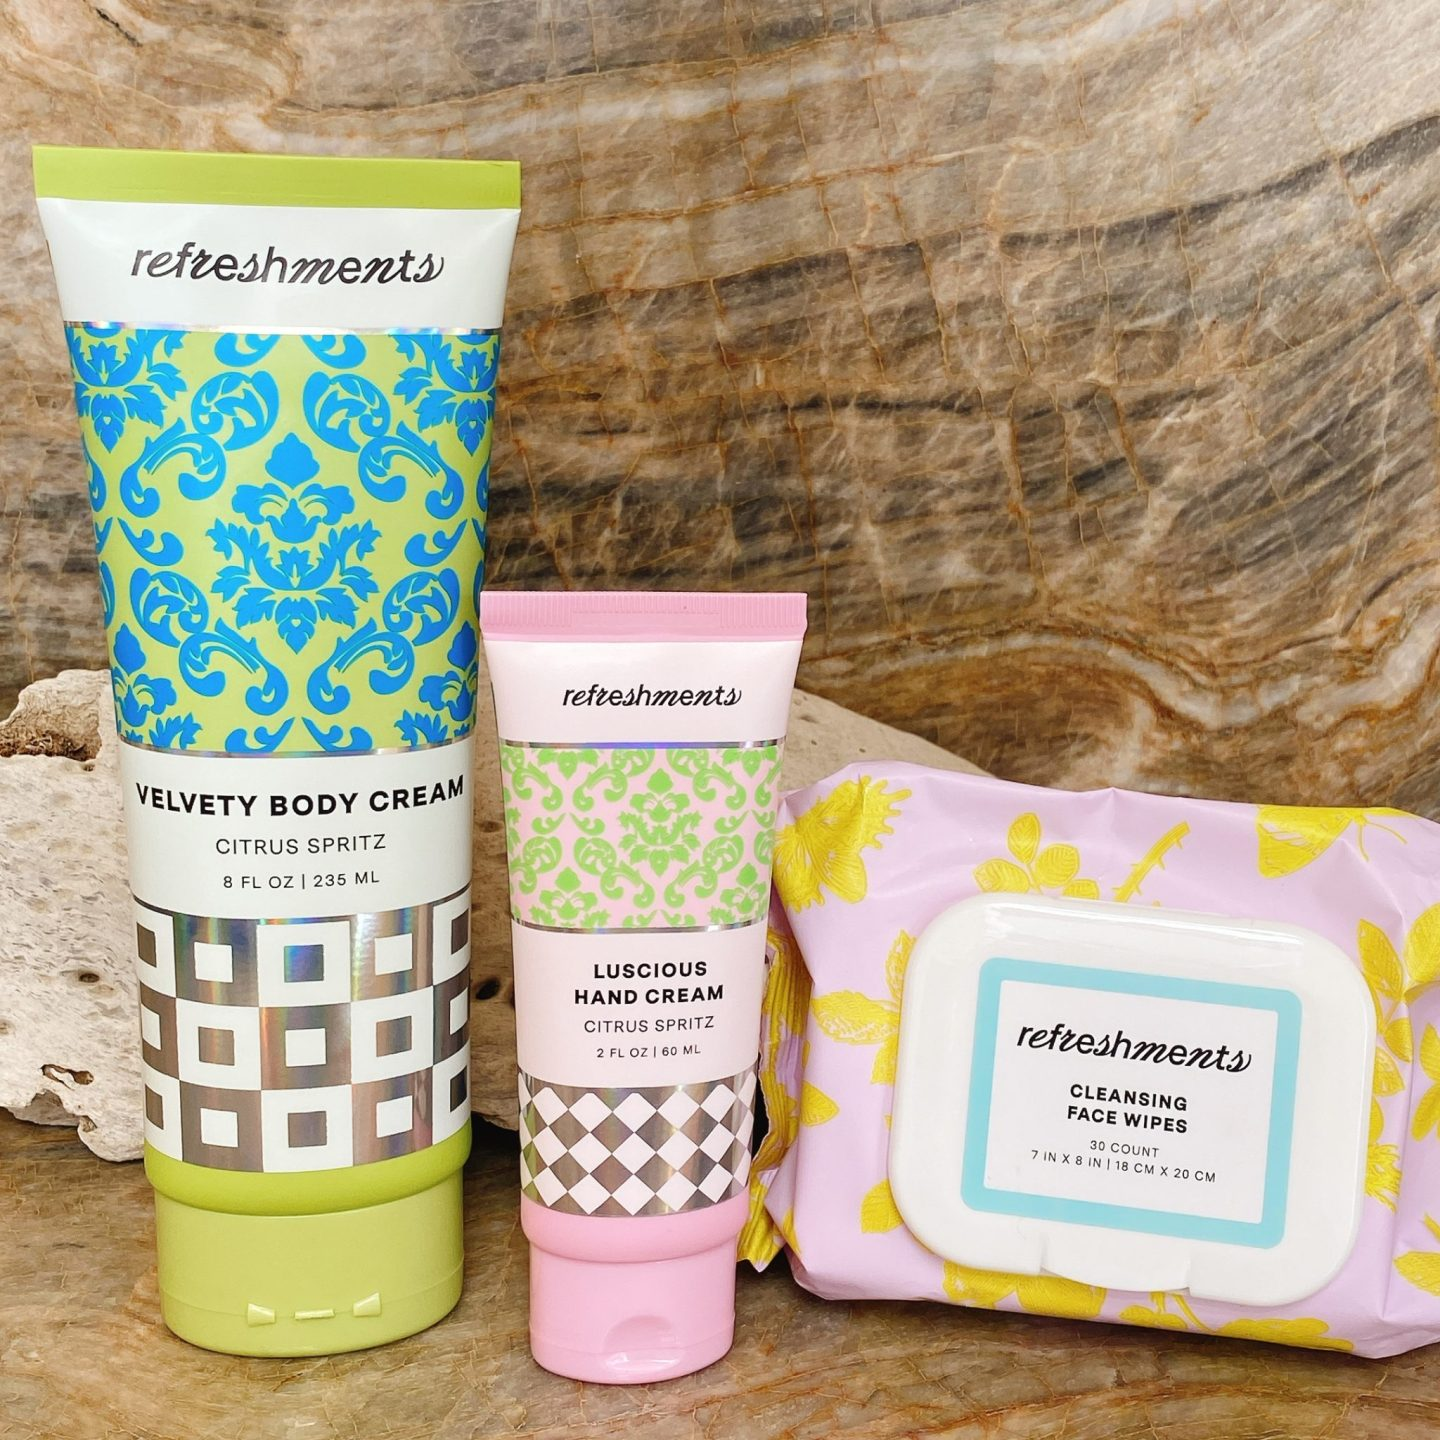 Refreshments skincare by IPSY